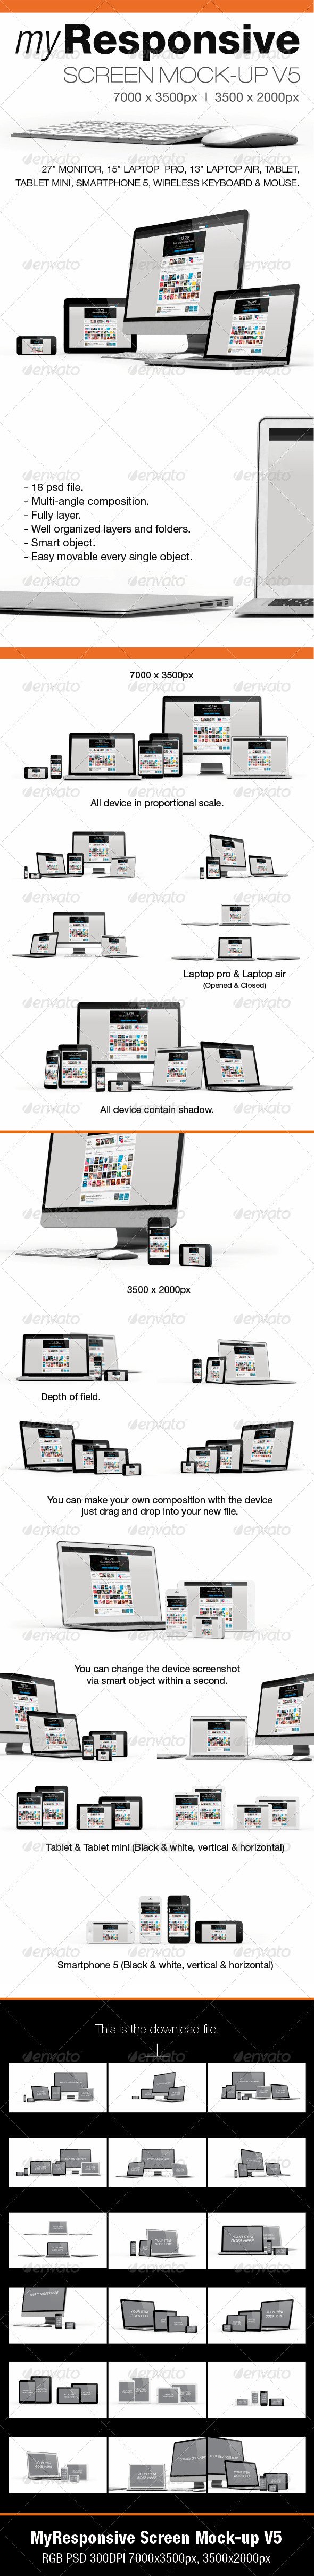 GraphicRiver myResponsive screen mock-up v5 5271794